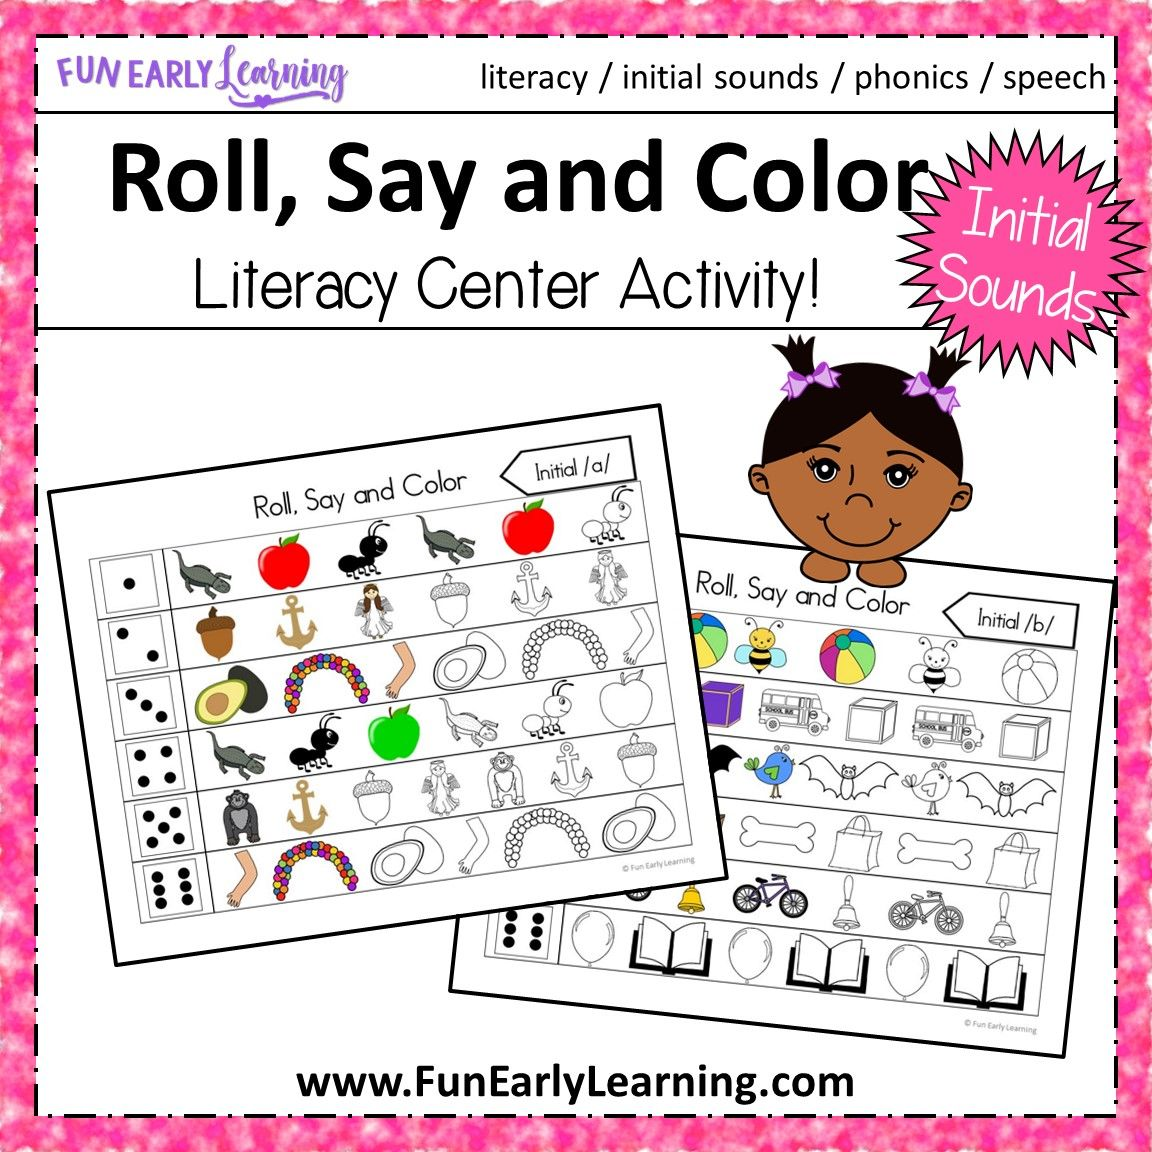 Roll, Say and Color Initial Sounds (With images) Initial